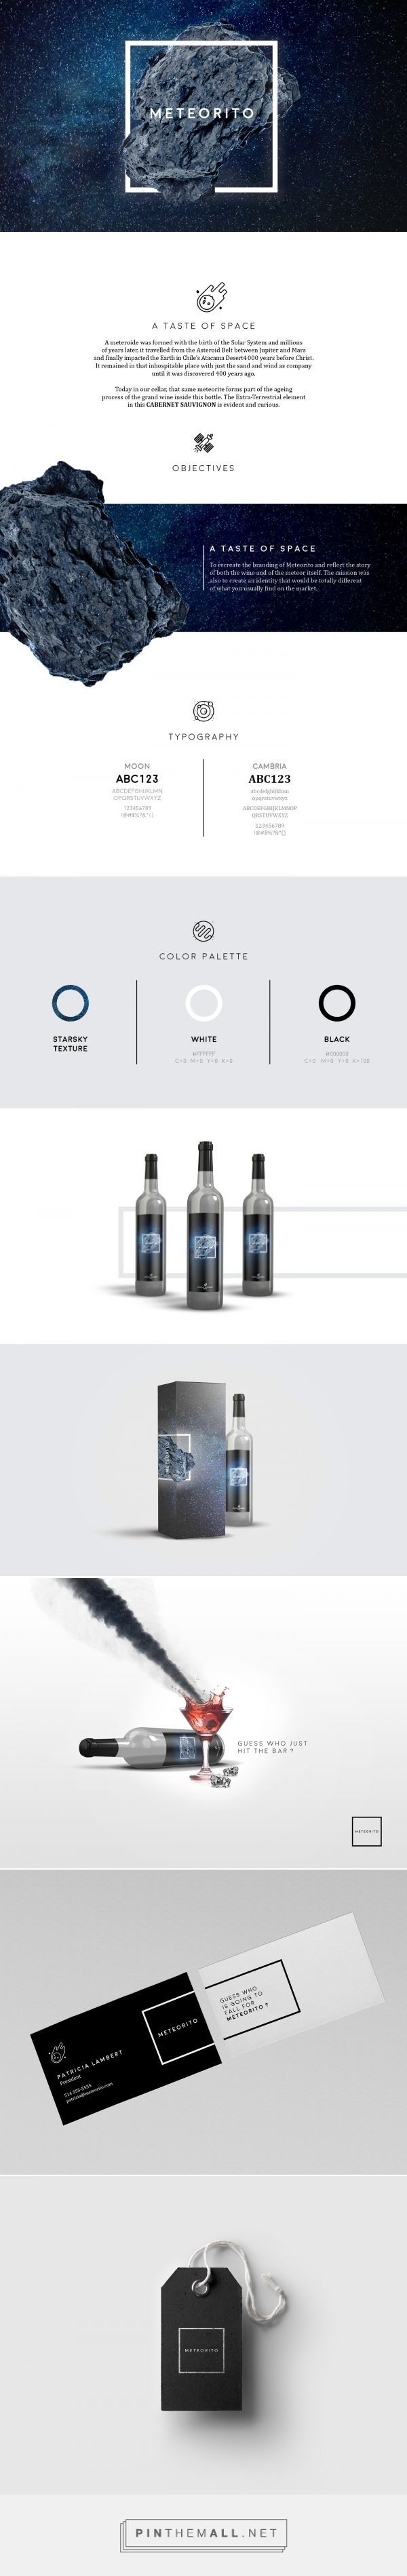 WIne webdesign sites